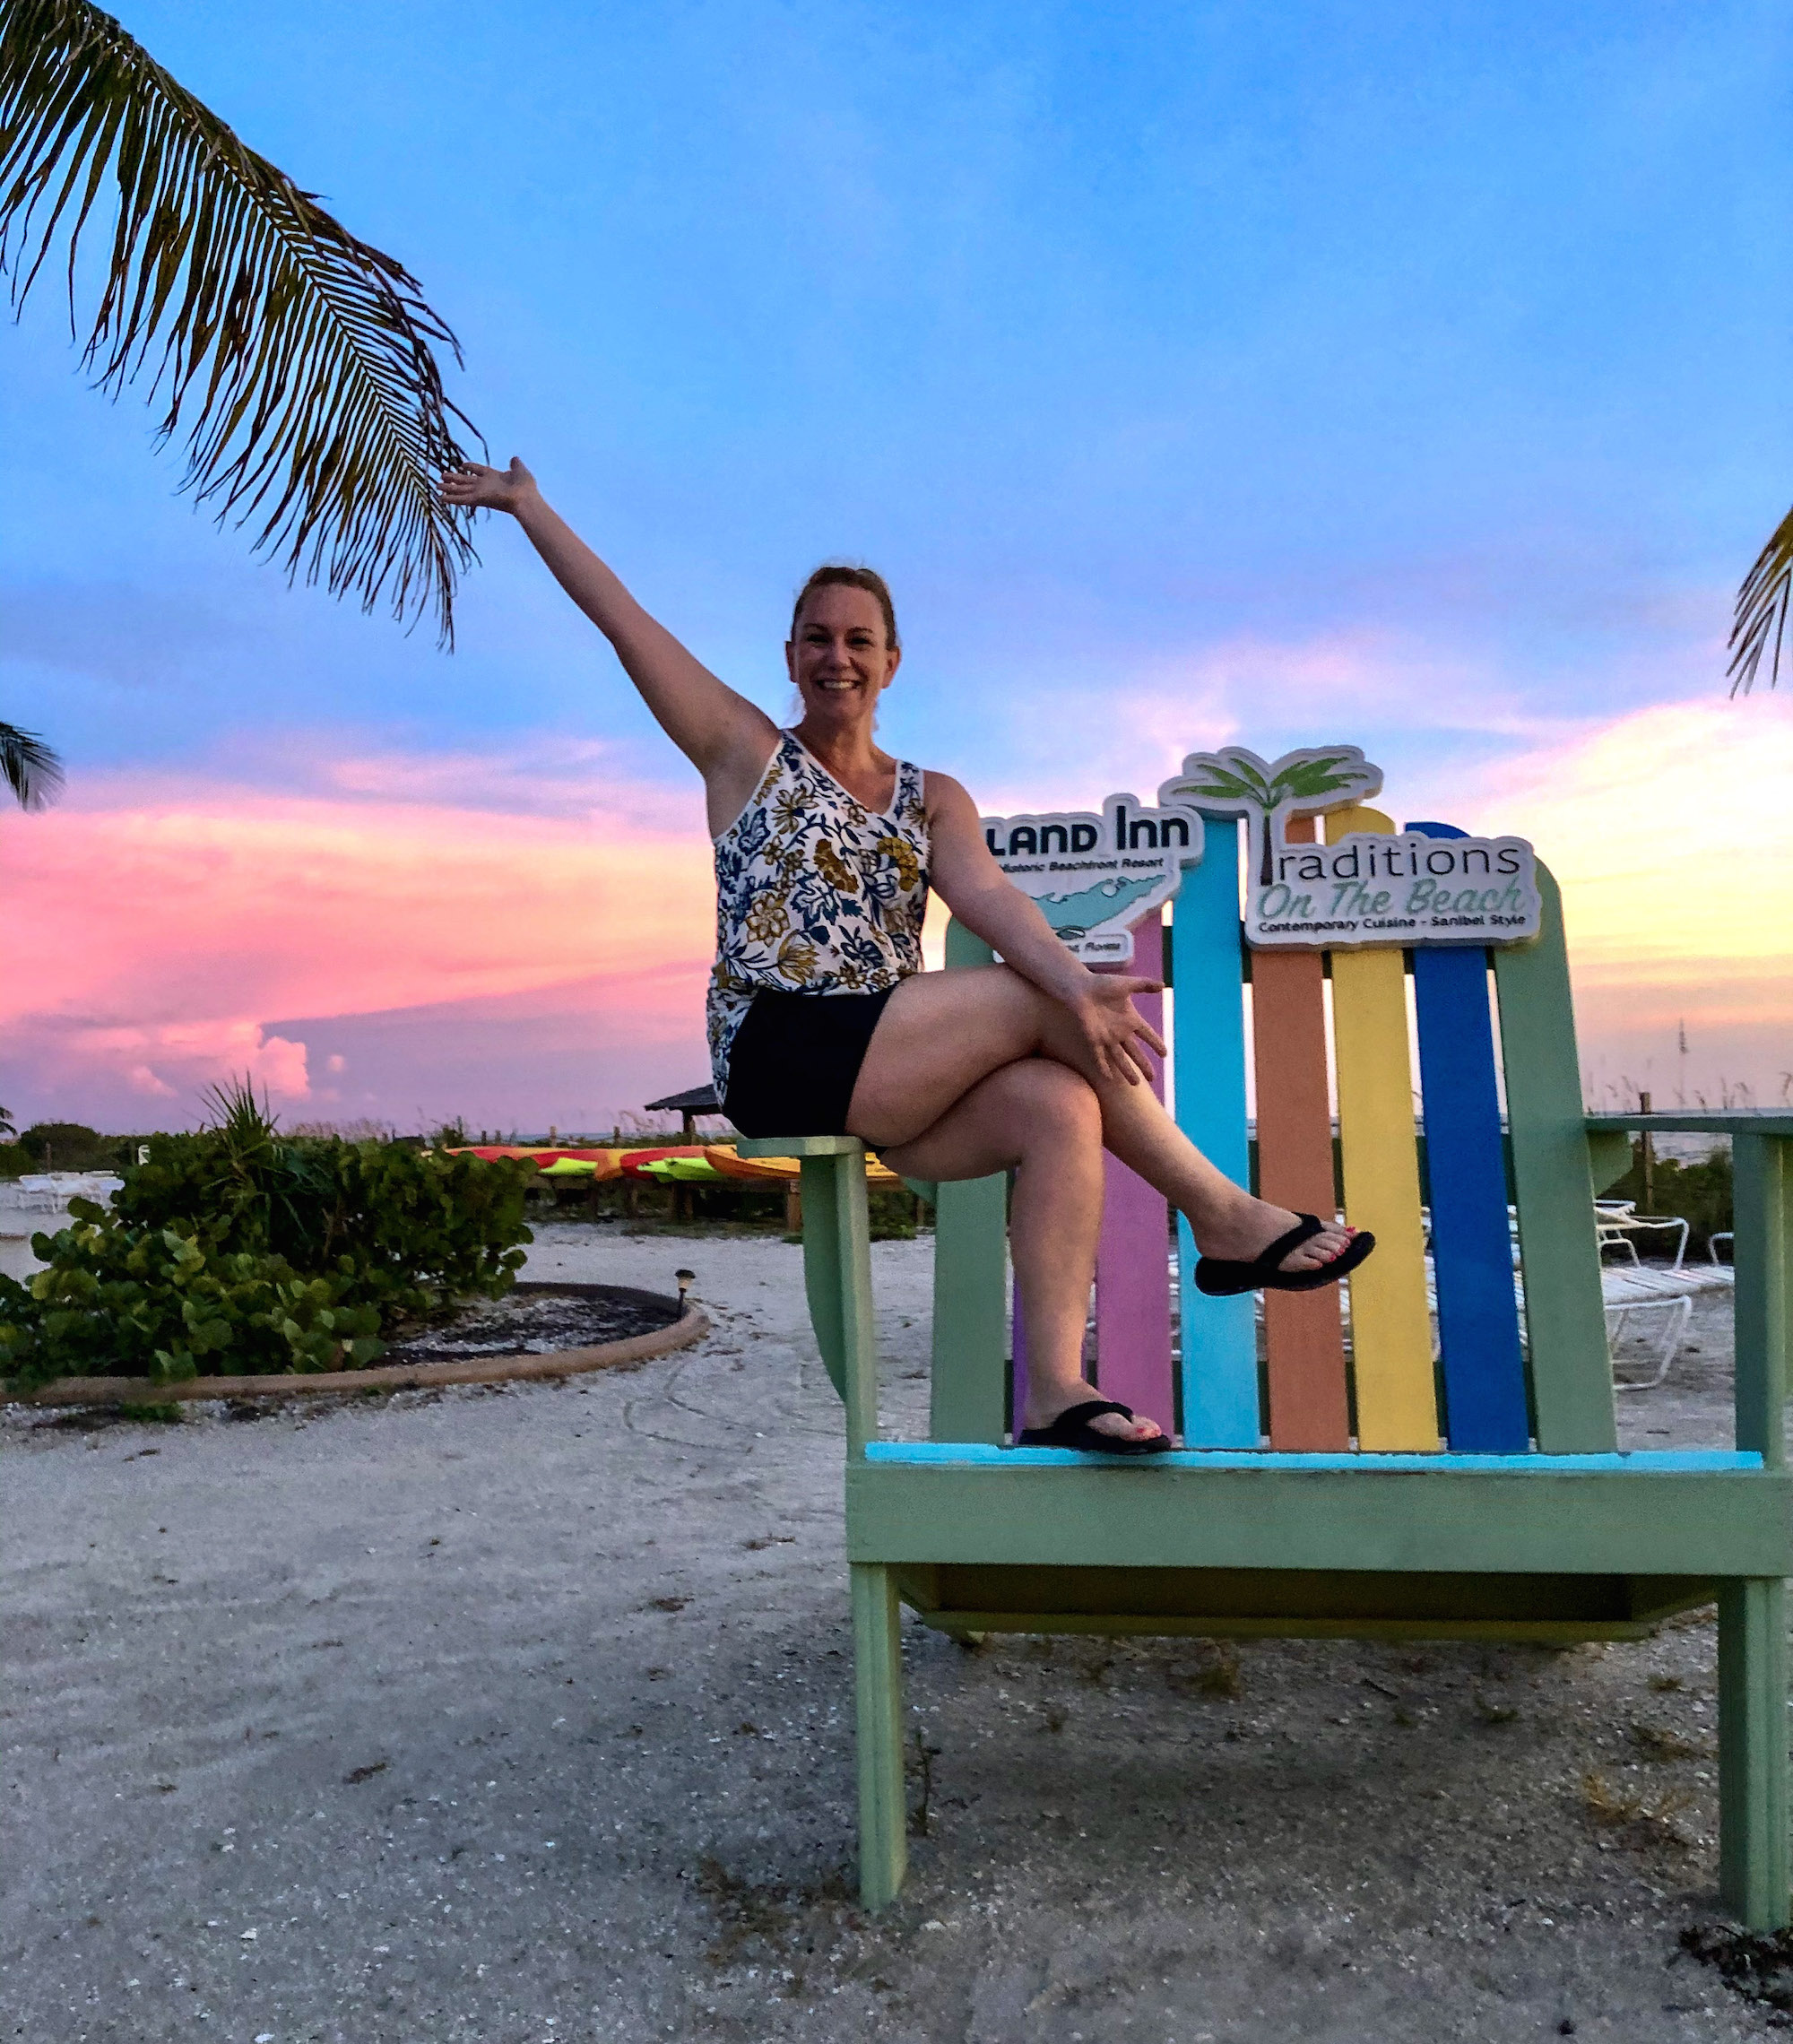 KathrynAnywhere in an oversized chair, very excited for a photos at Island Inn on Sanibel Island.